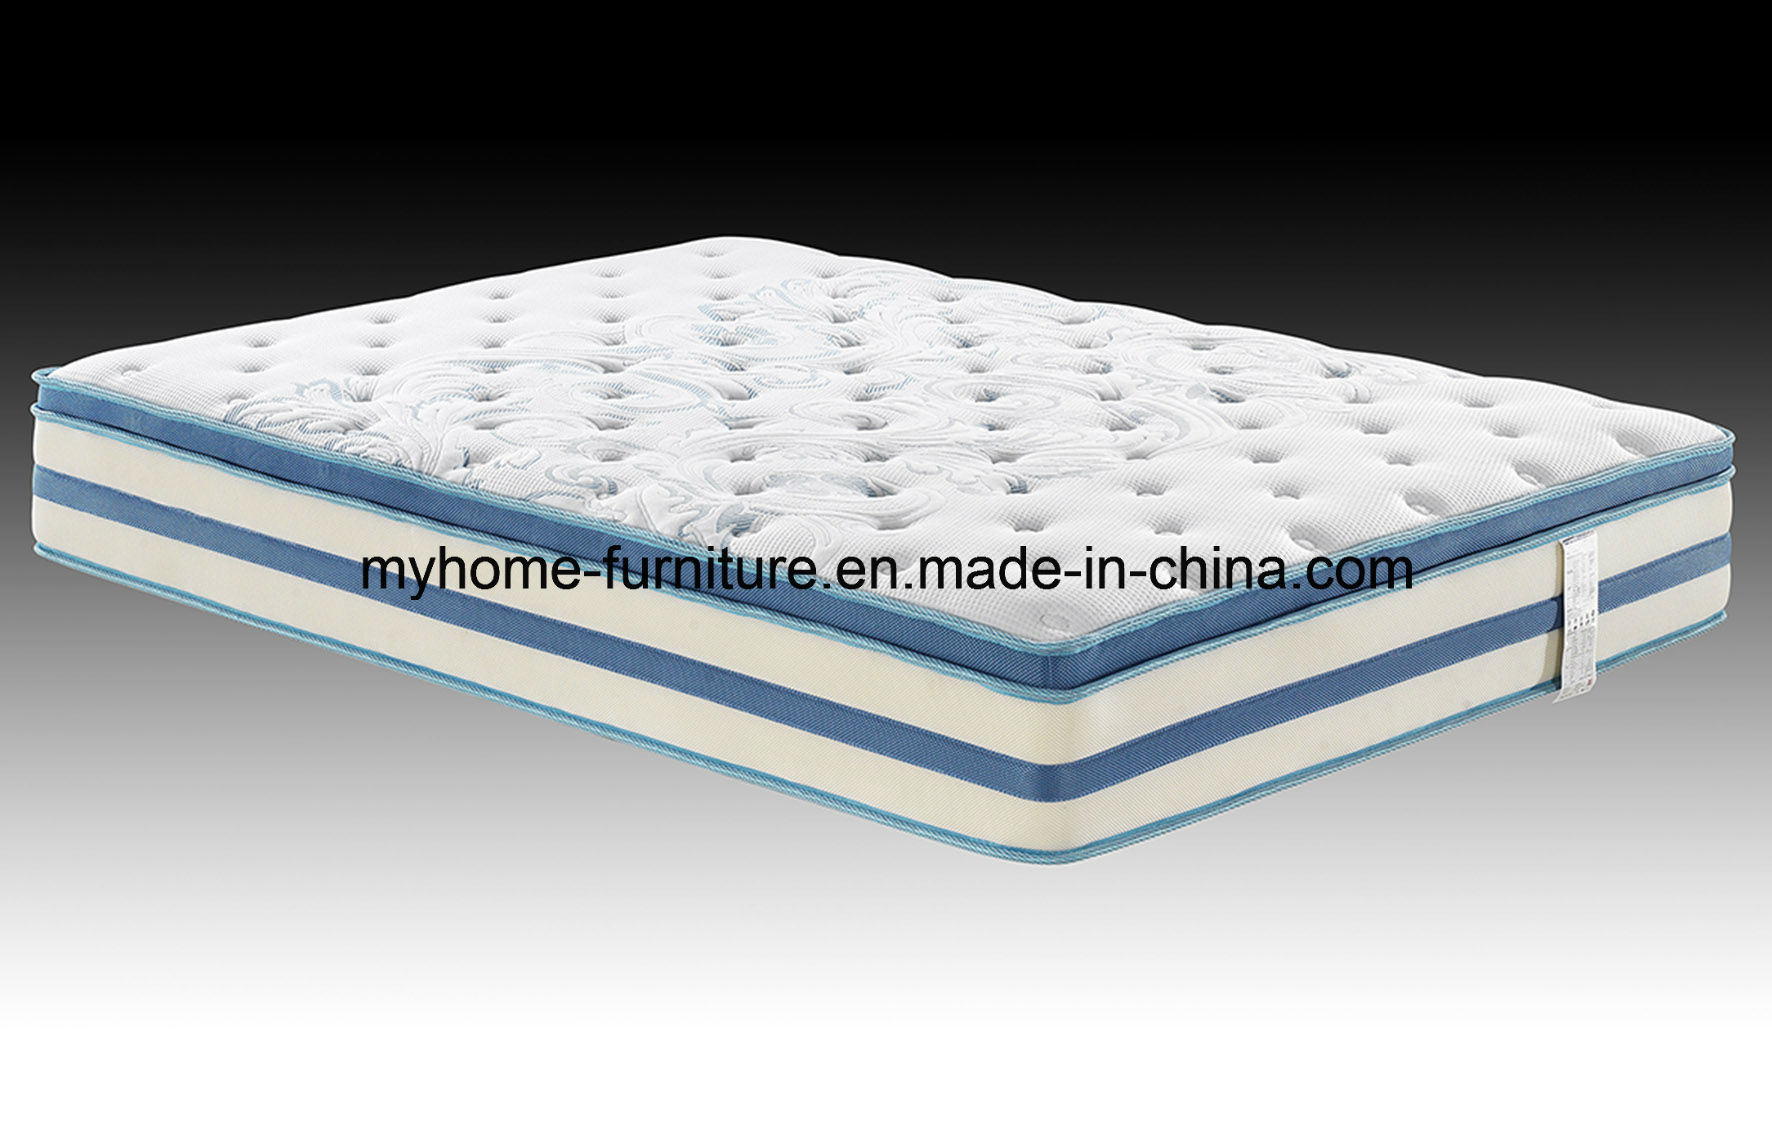 """Authentic Comfort 3""""Orthopedic 5-Zone Foam Mattress Toppers"""